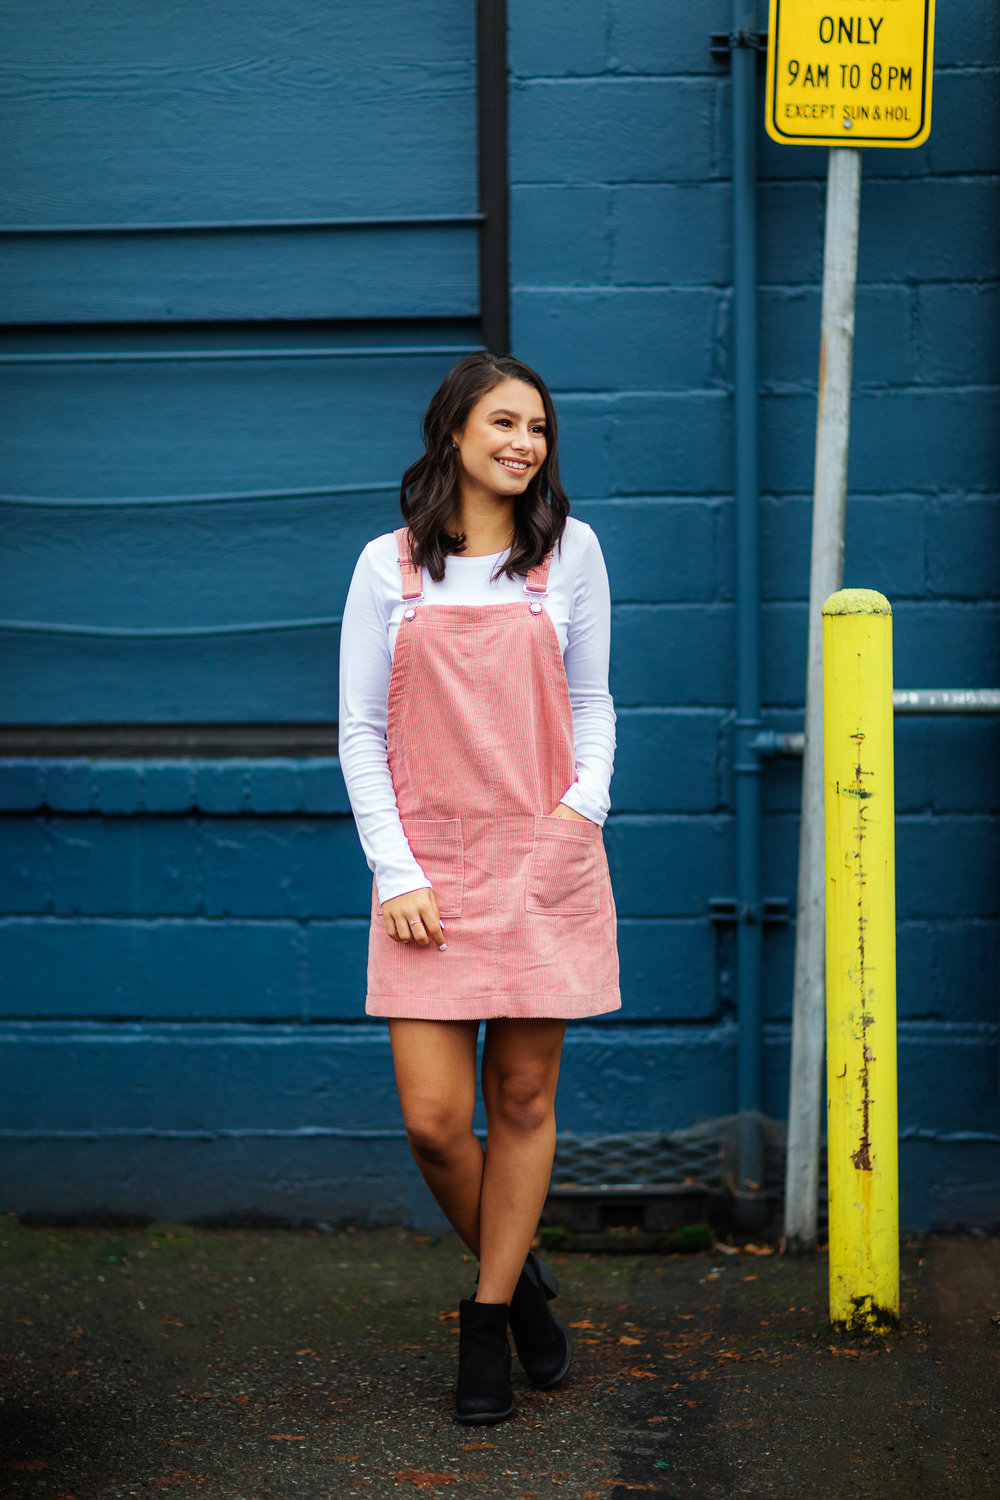 ariella-noelle-photography-seattle-area-senior-portraits-49.jpg